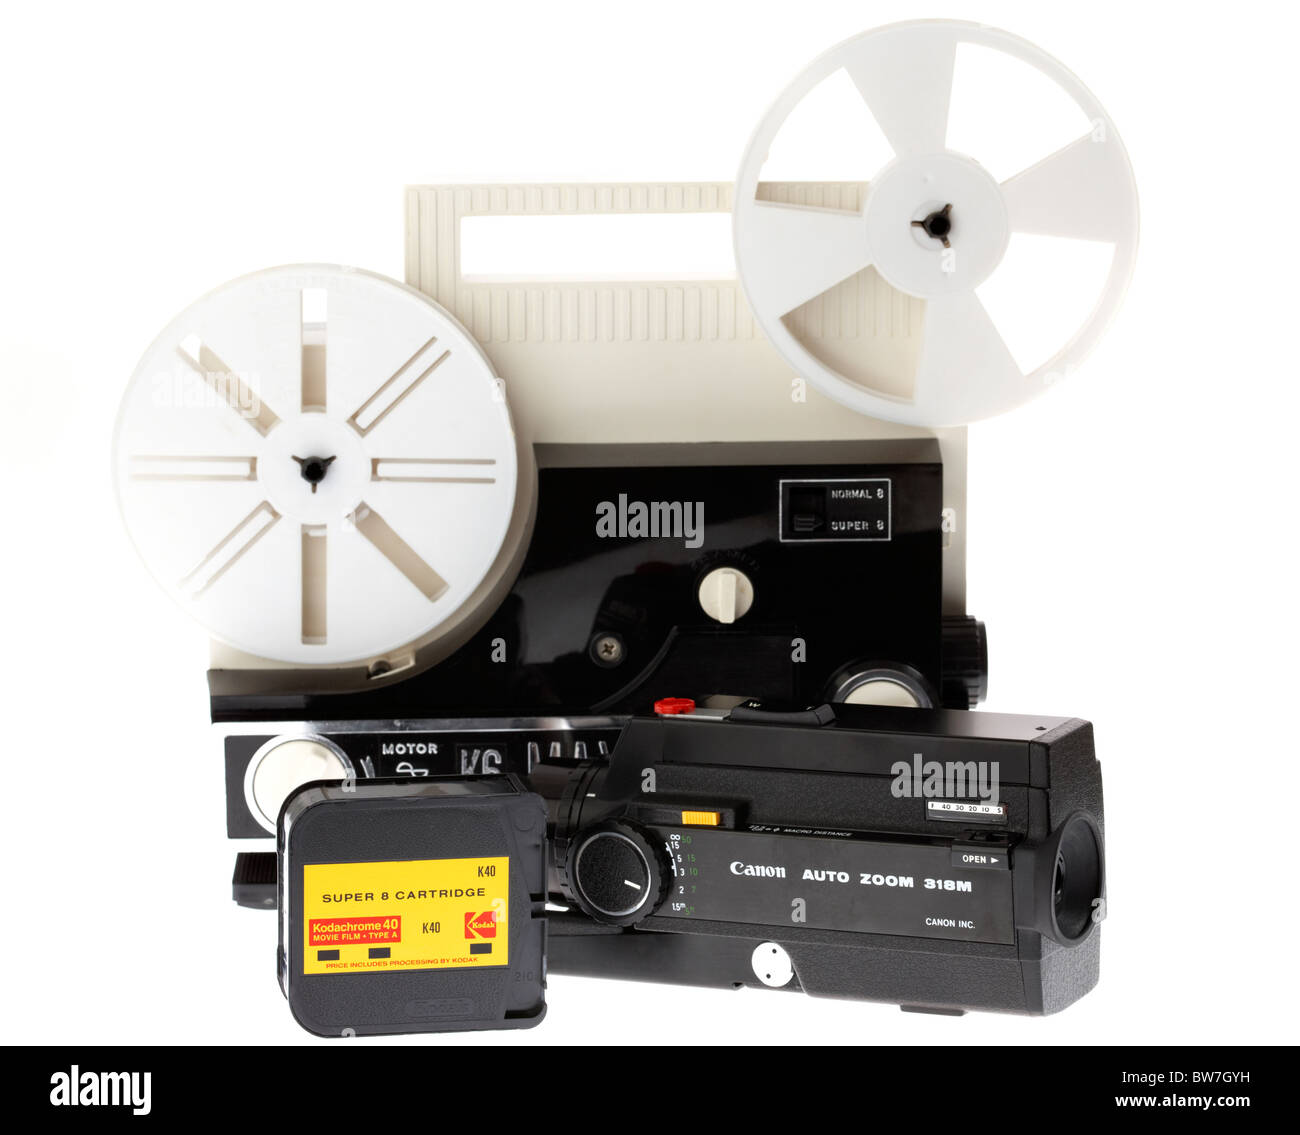 super8 cine home movie camera made by canon kodak kodachrome film cartridge and movie projector - Stock Image